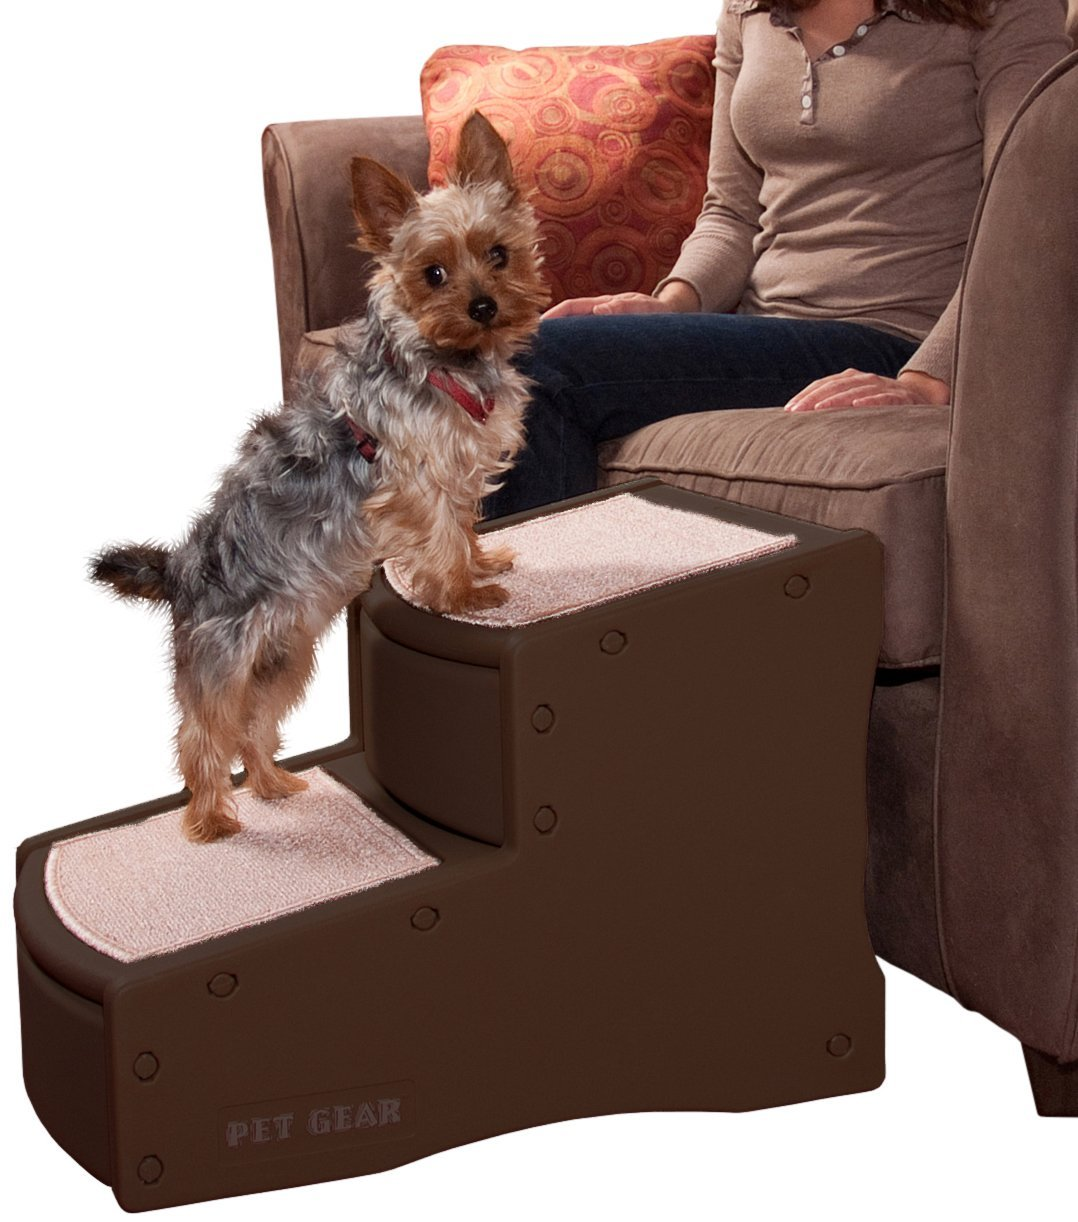 Pet Gear Easy Step II Pet Stairs, 2 Step for Cats/Dogs up to 150 Pounds, Portable, Removable Washable Carpet Tread, 2-Step, Chocolate by Pet Gear